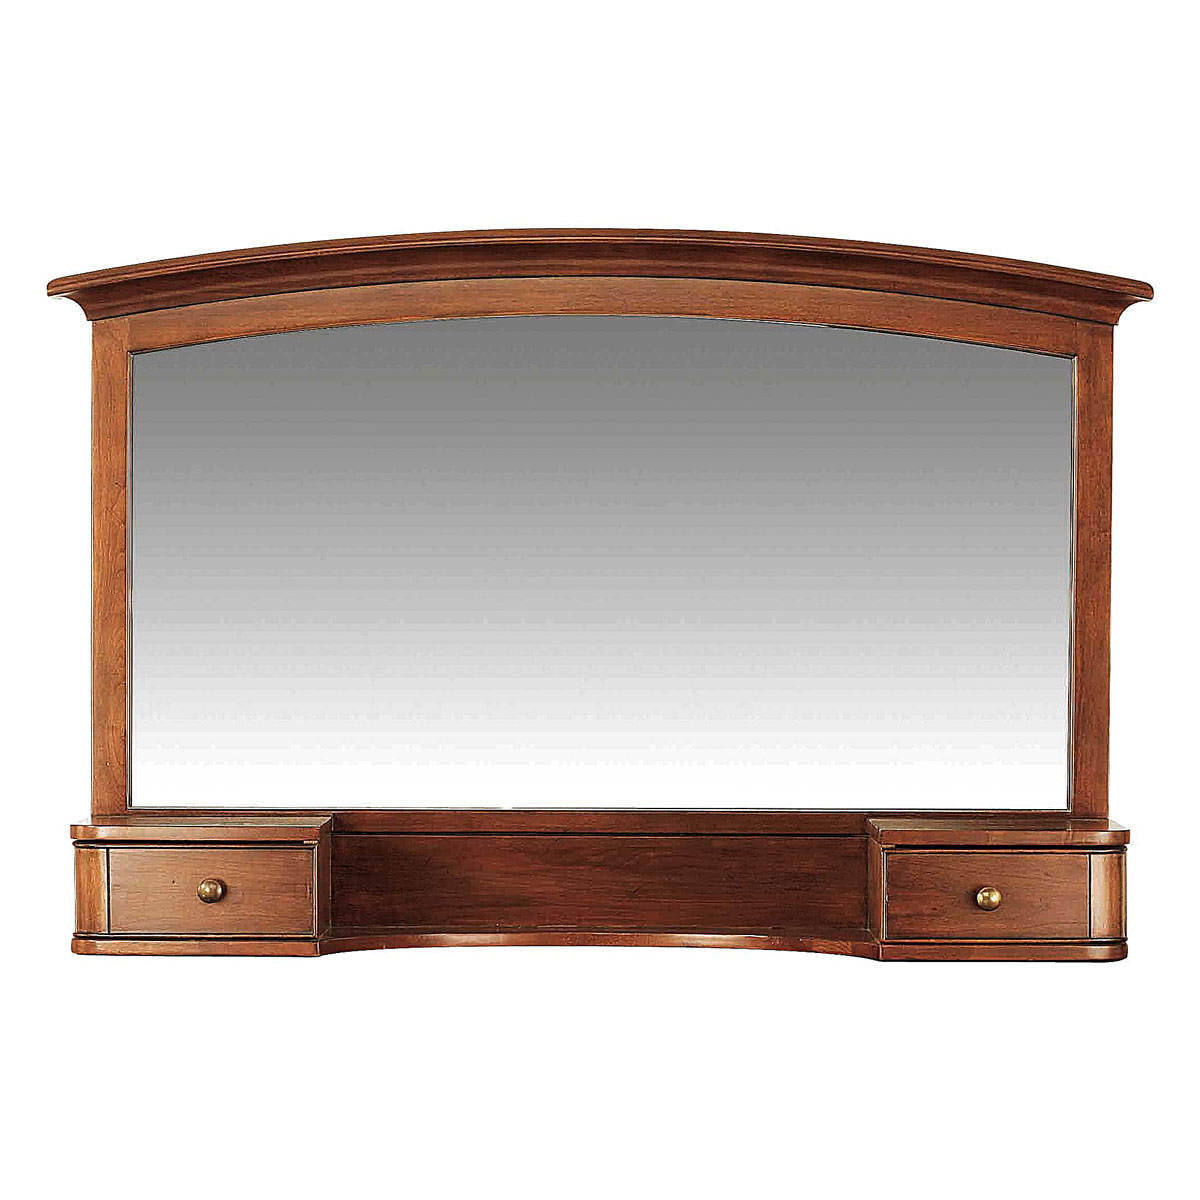 Willis & Gambier Lille Dressing Table Mirror